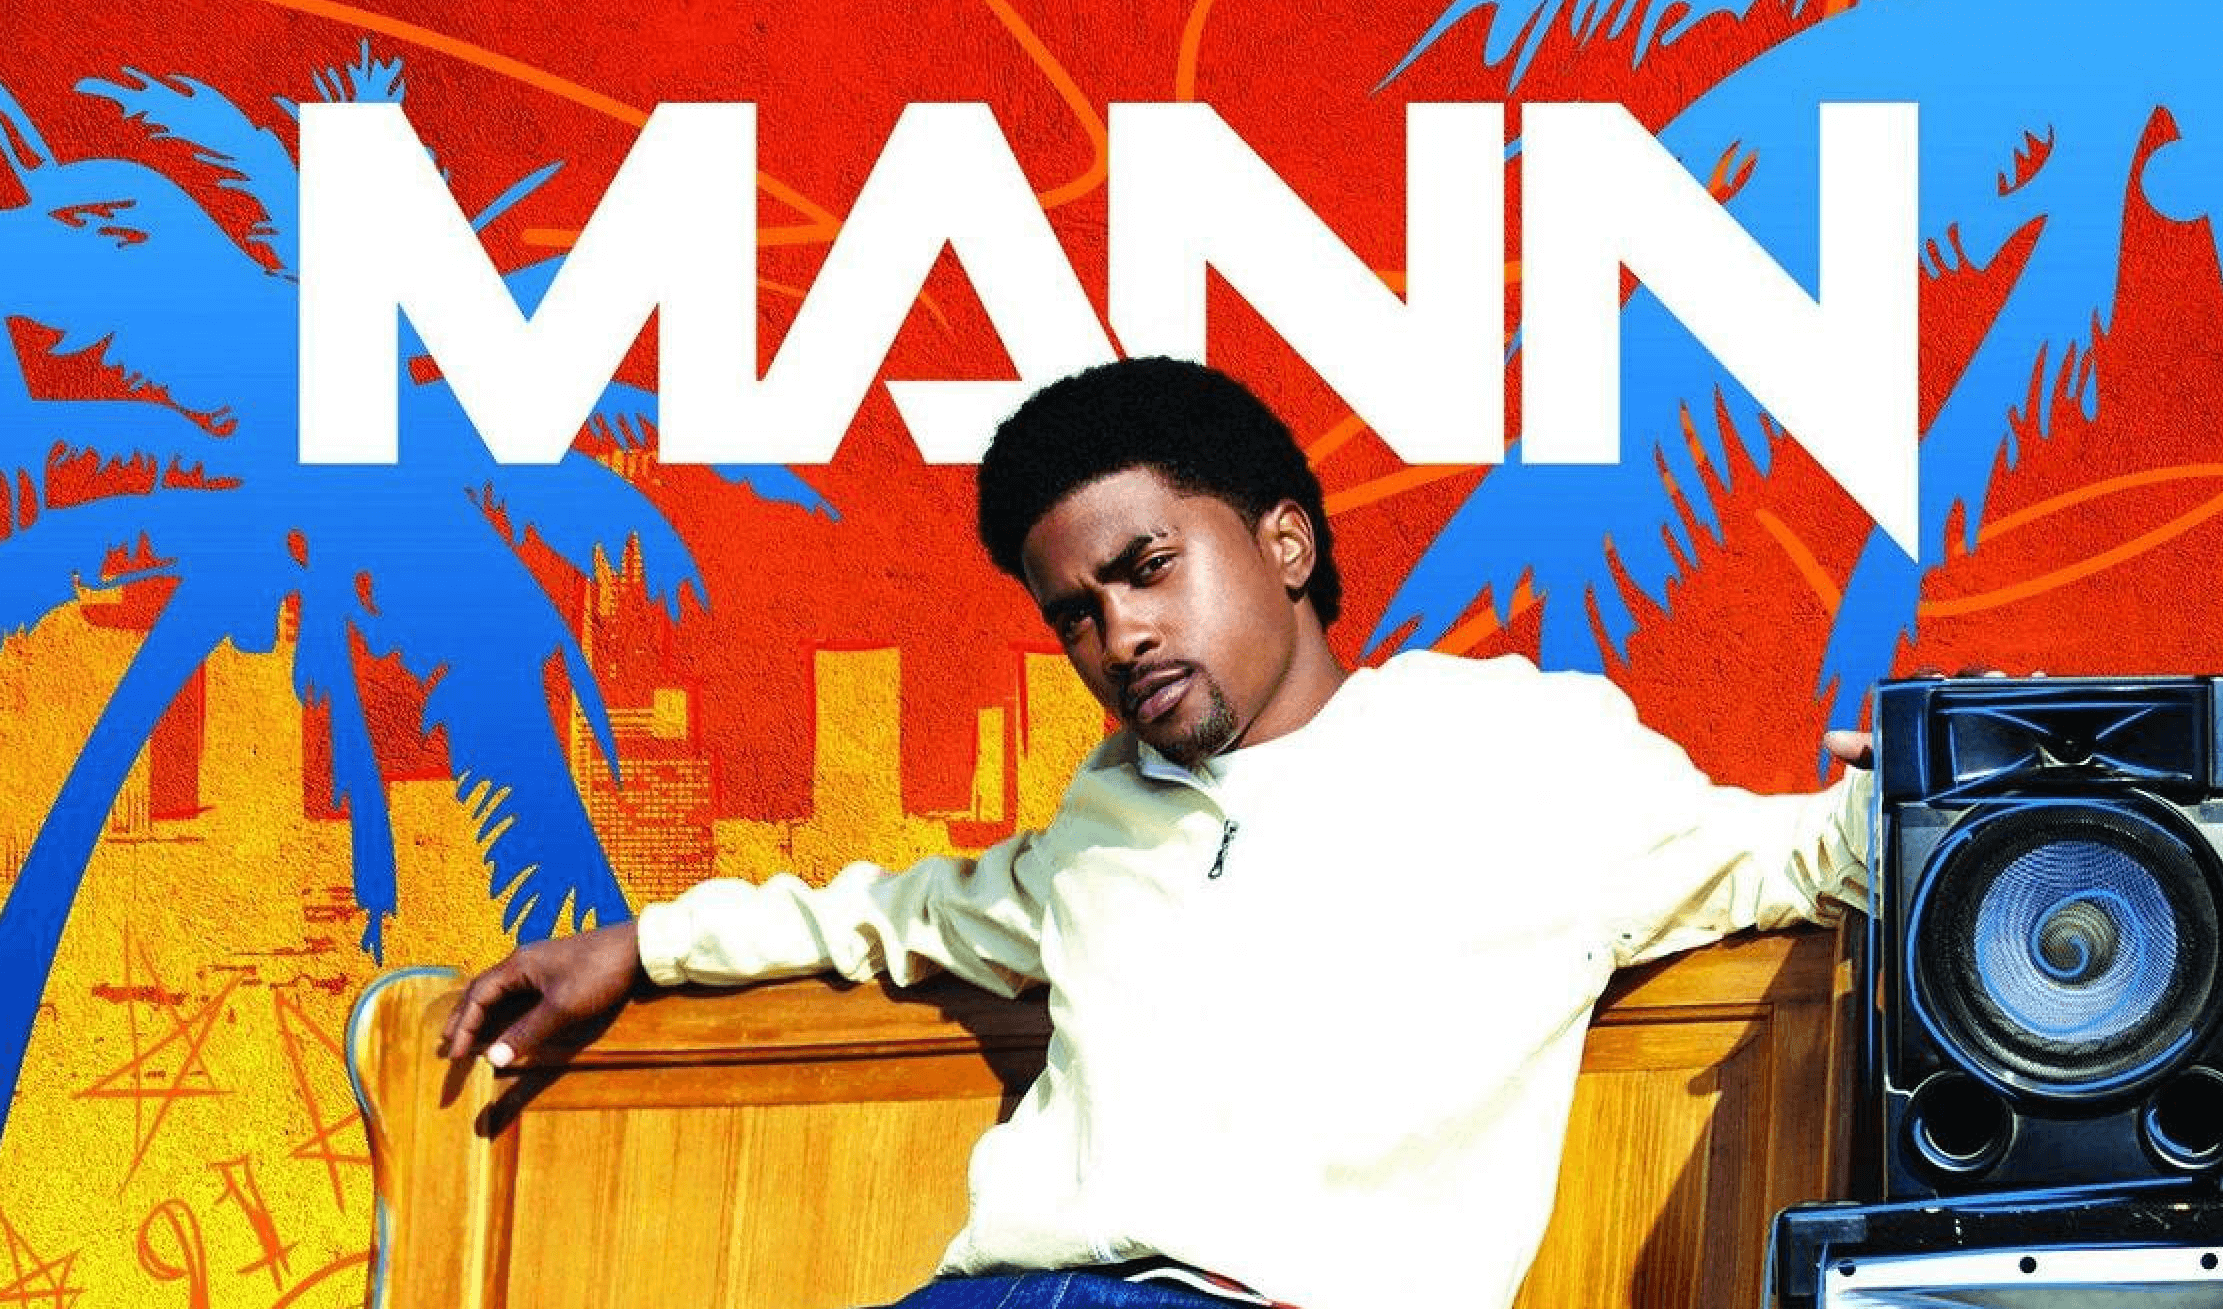 mann_mannsworld